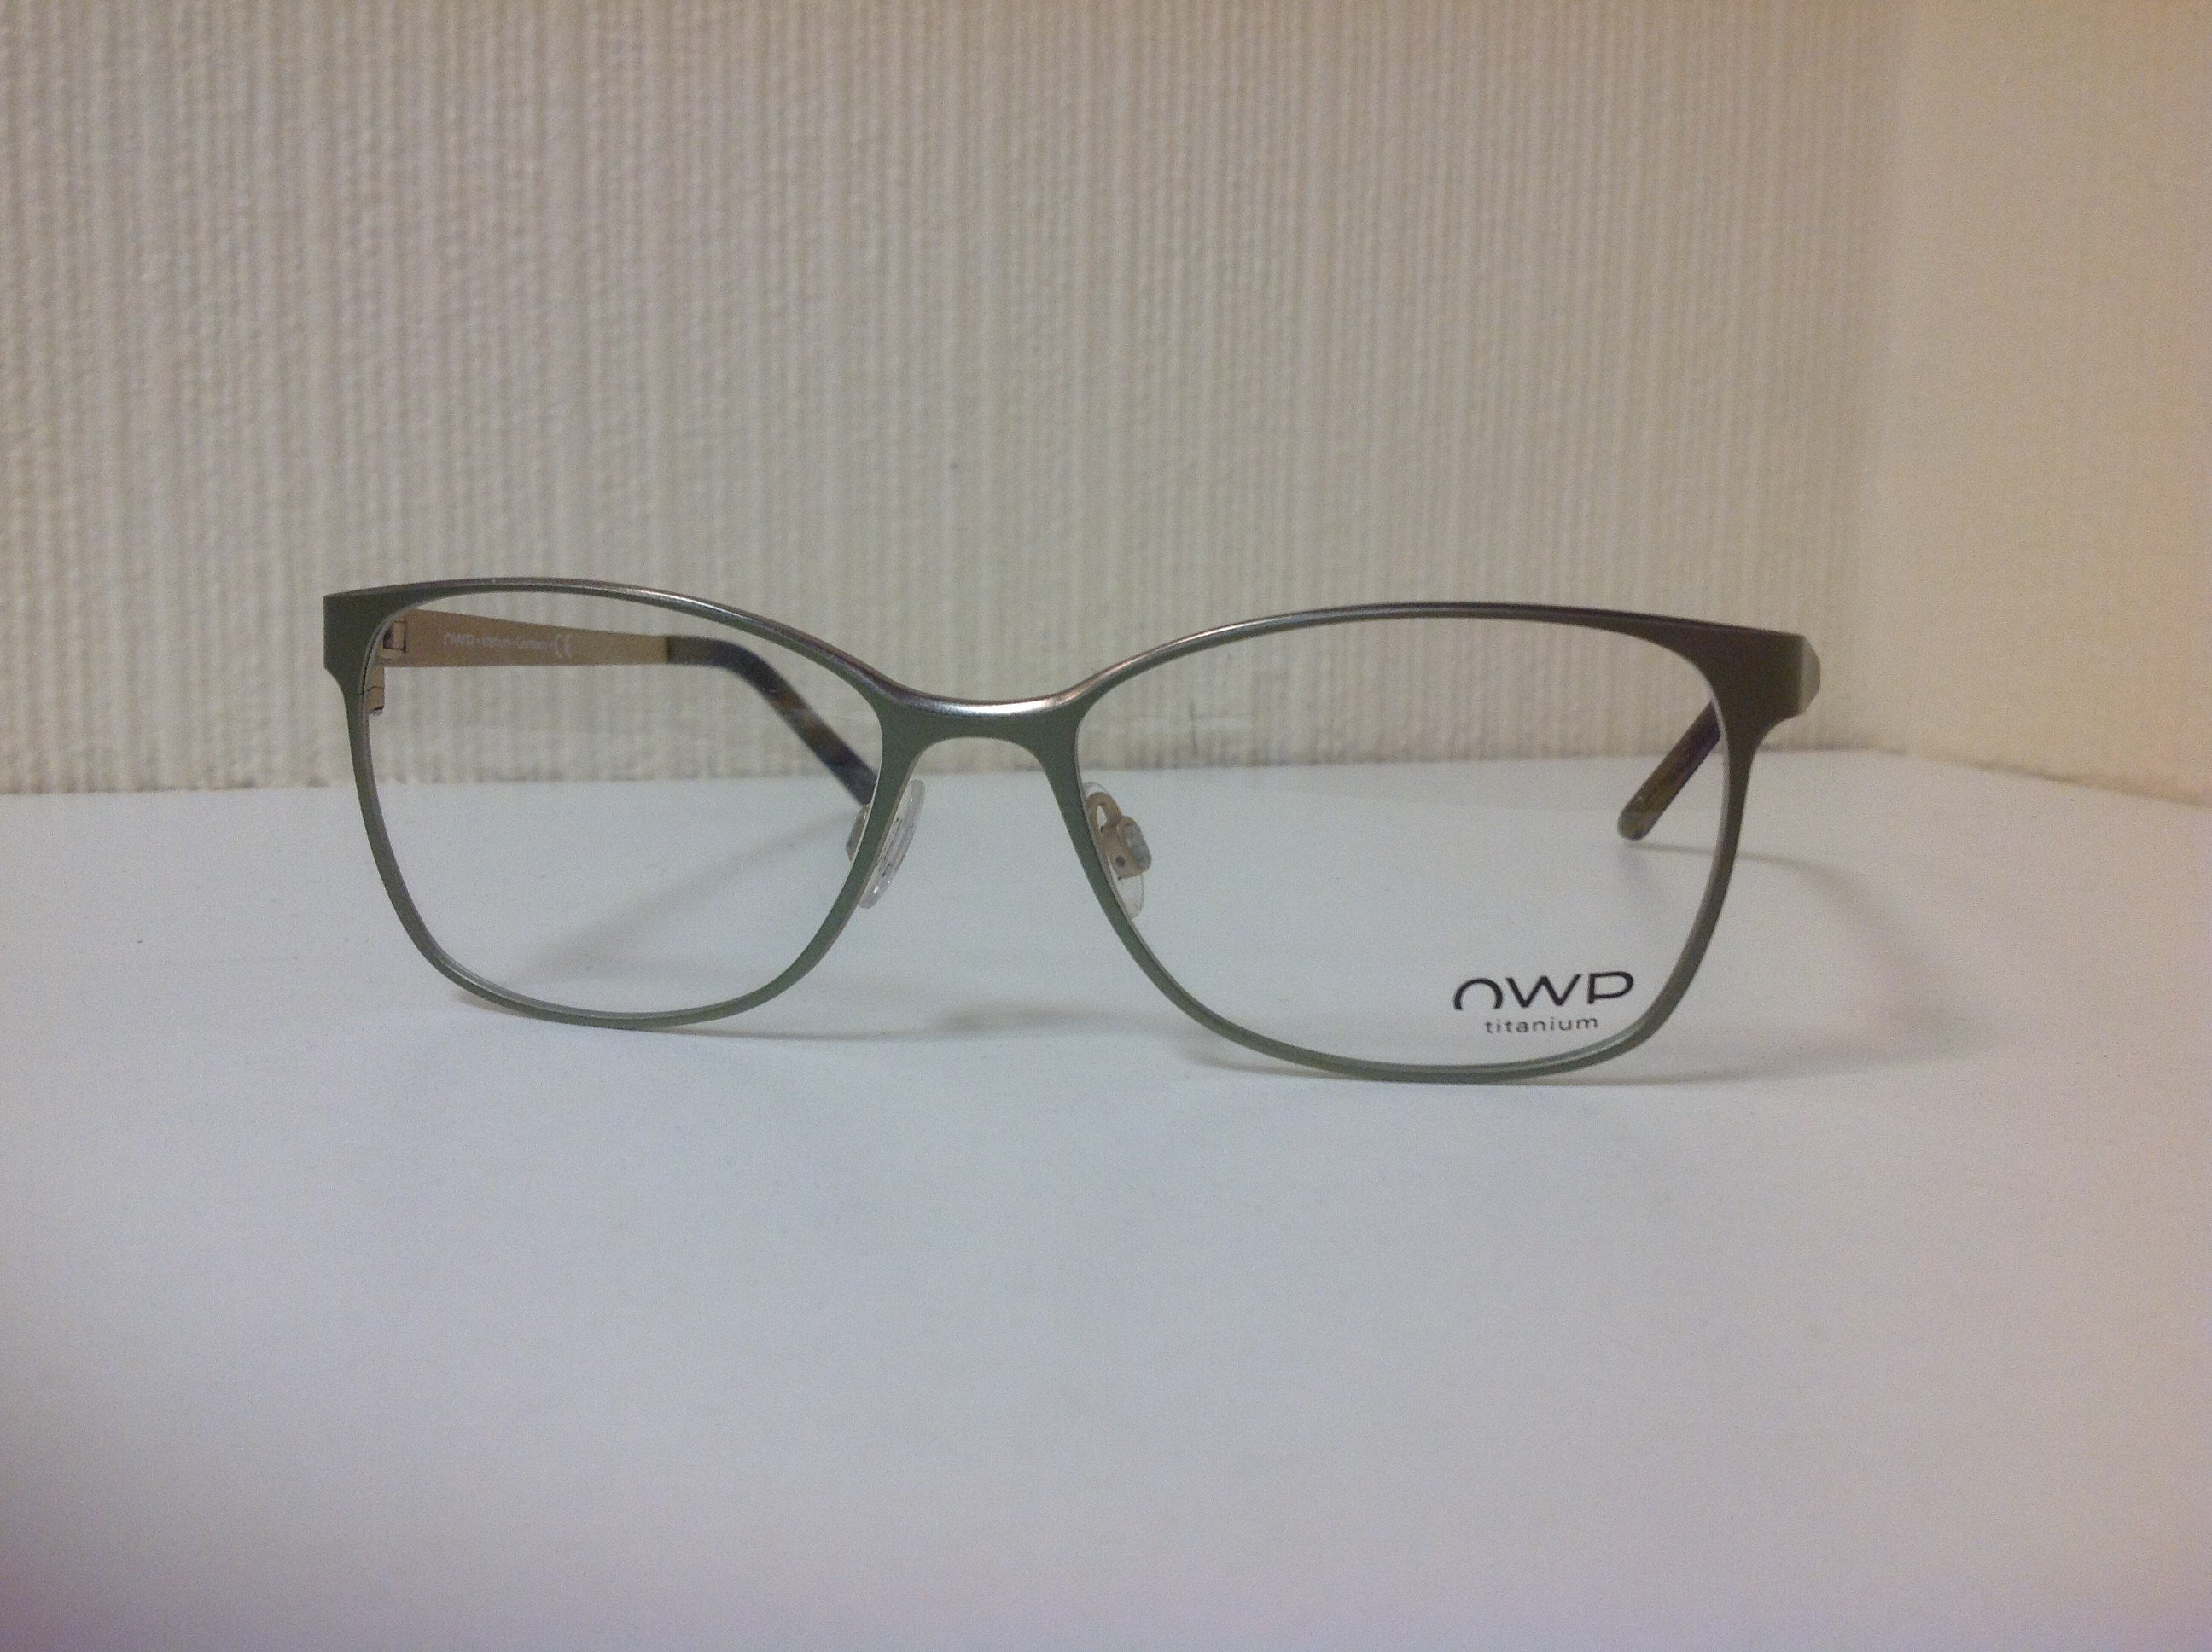 NWP glasses with chrome frames